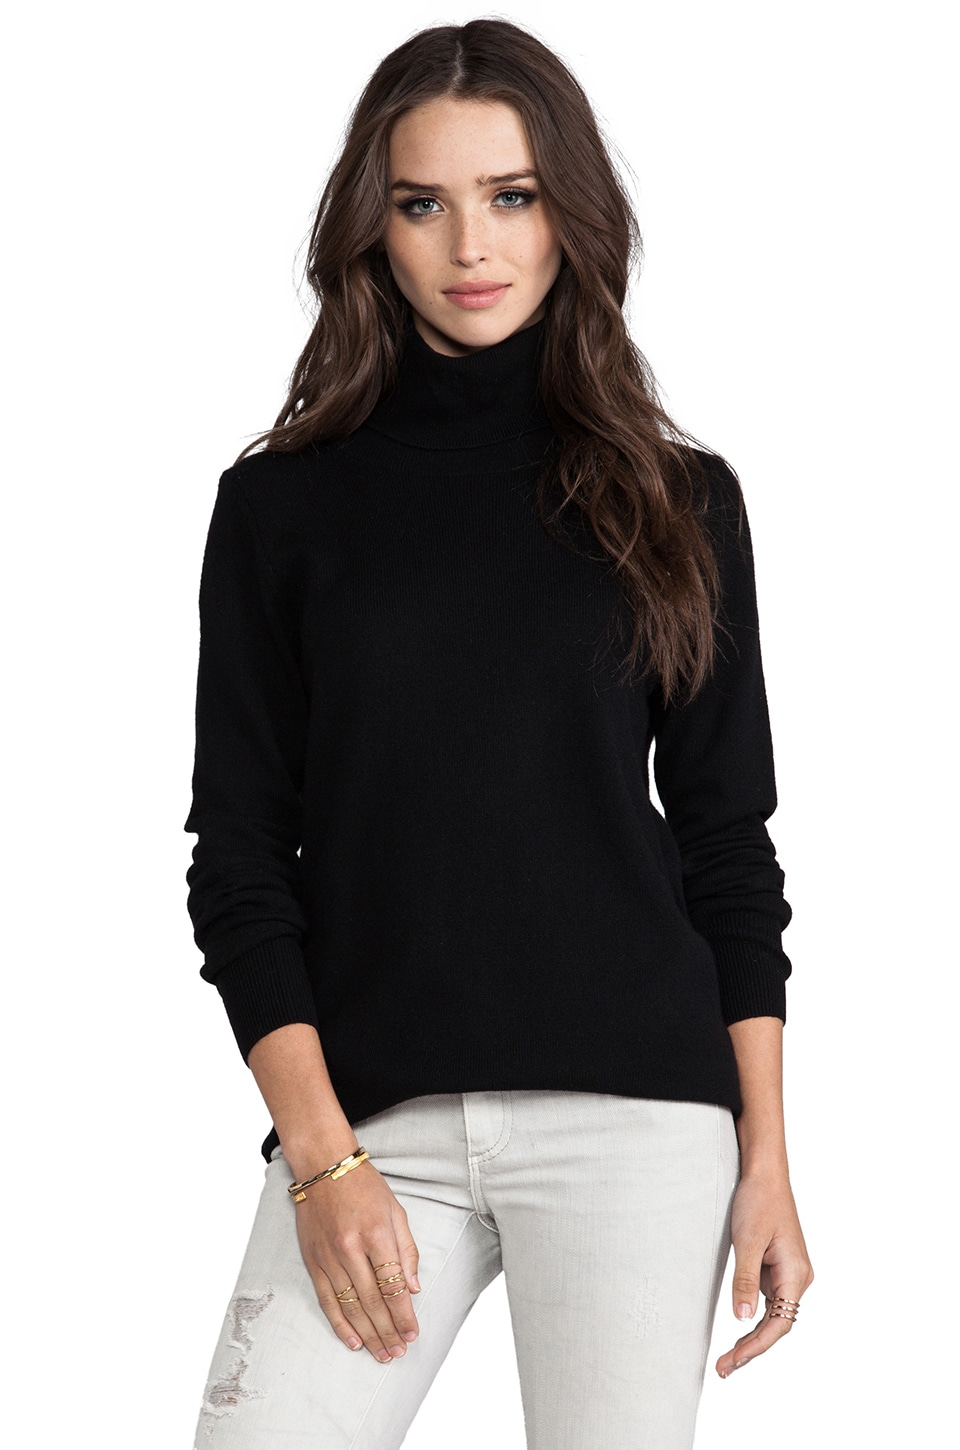 Joie Solid Wool Cashmere Maryse Sweater in Caviar